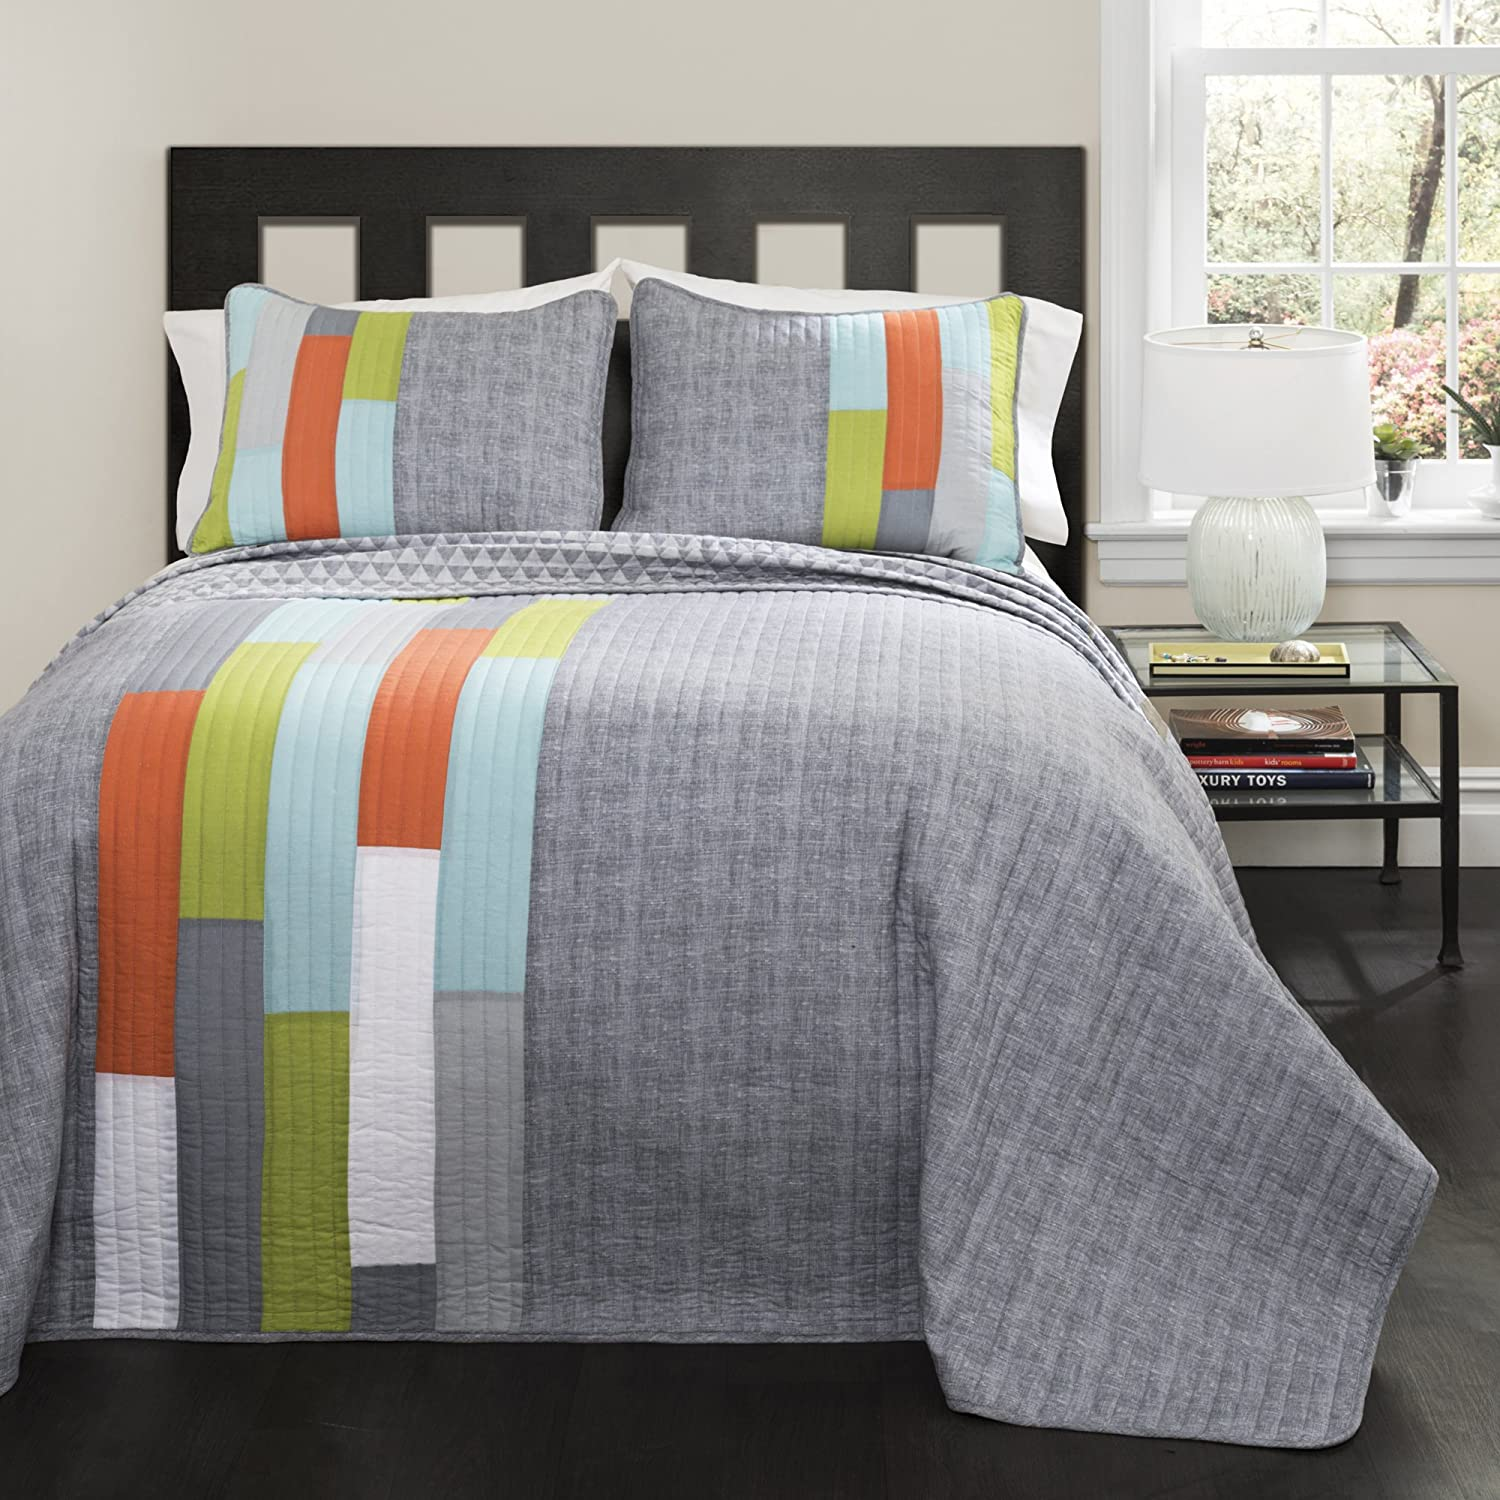 Lush Decor Orange Shelly Stripe Quilt | Modern Geometric Pattern Reversible 2 Piece Bedding Set-Twin-Gray